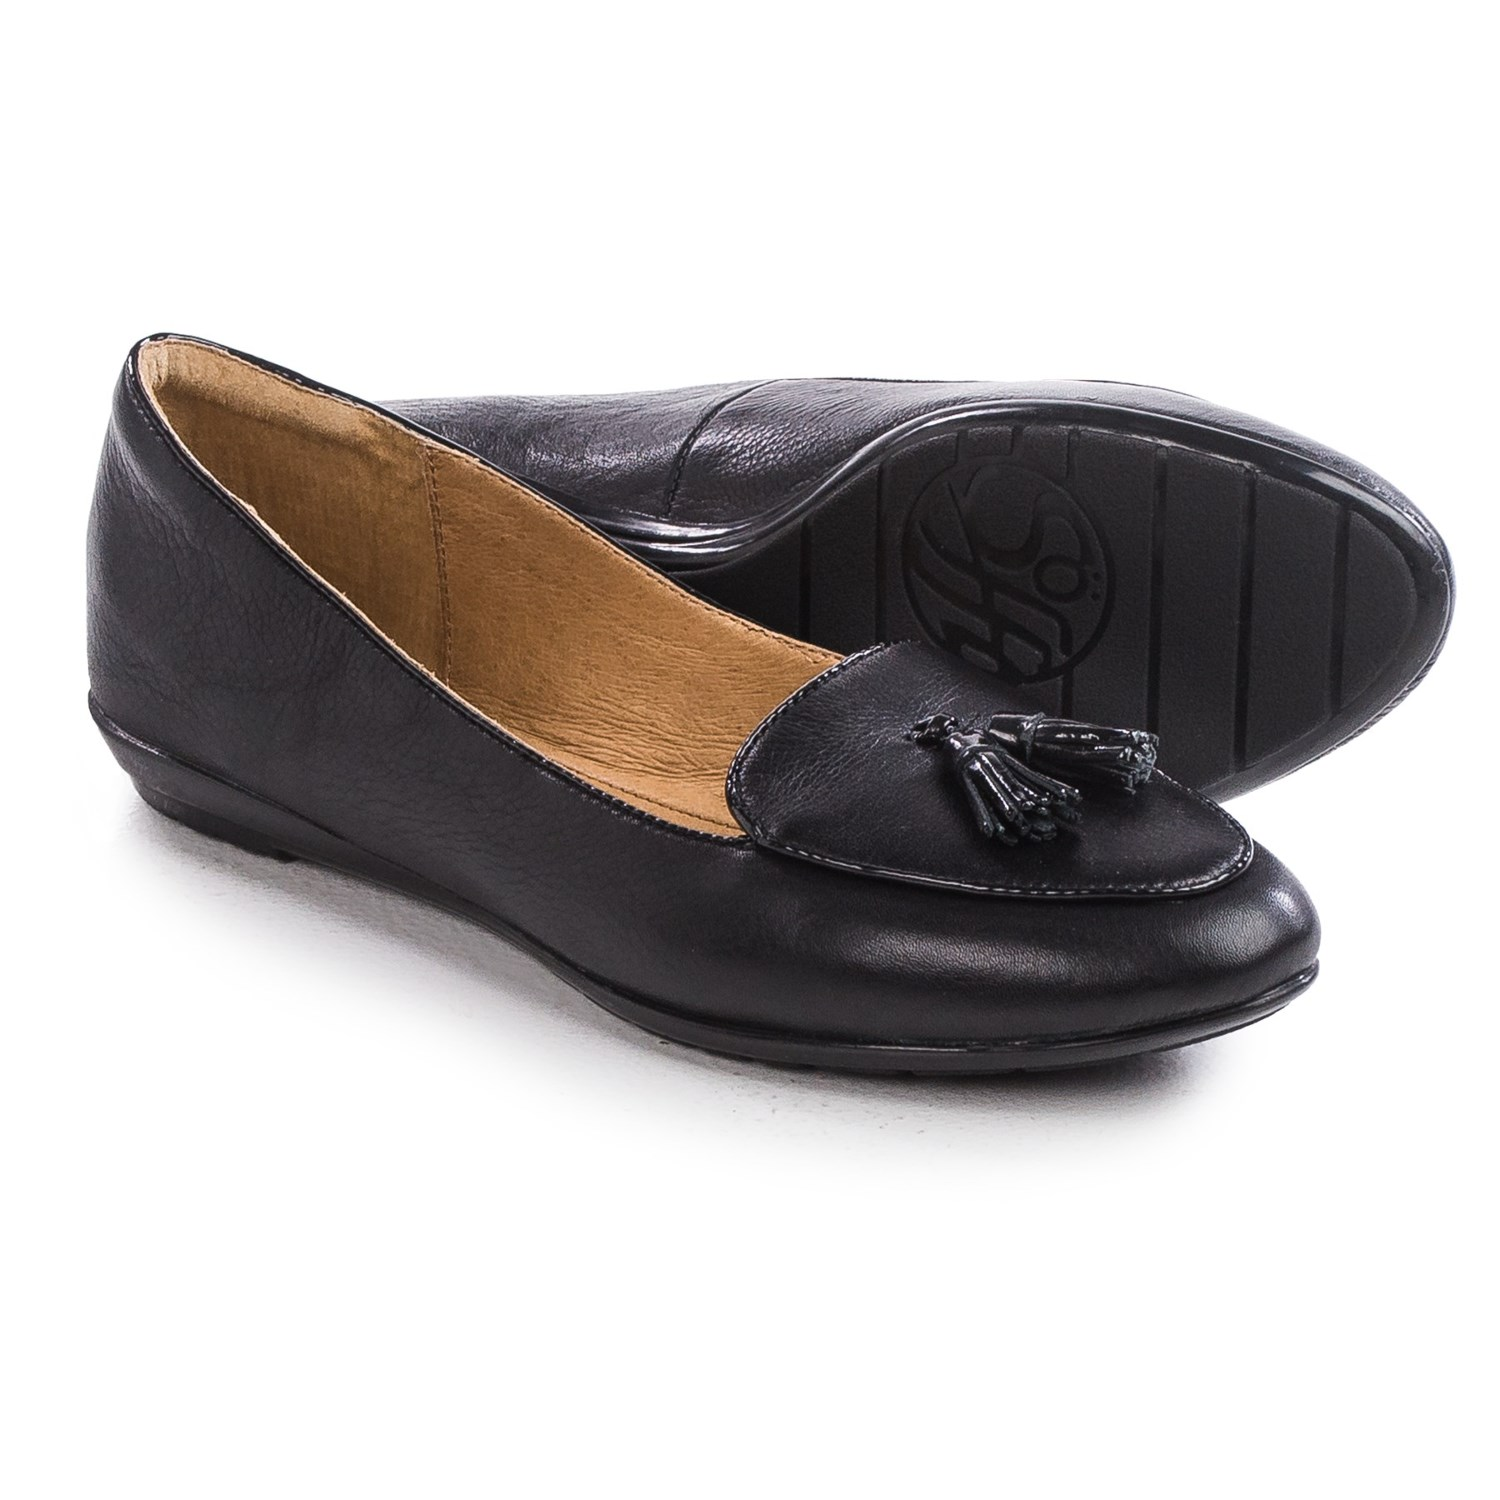 Leather slip ons, multifuntional-- can be worn as backless loafers, as Naturalizer Women's Saban Slip-On Loafer. by Naturalizer. Leather loafers for women features slip-on style and can be worn as Kunsto Women's Leather Casual Loafer Shoes. by Kunsto. $ - $ $ 12 $ 24 99 Prime.